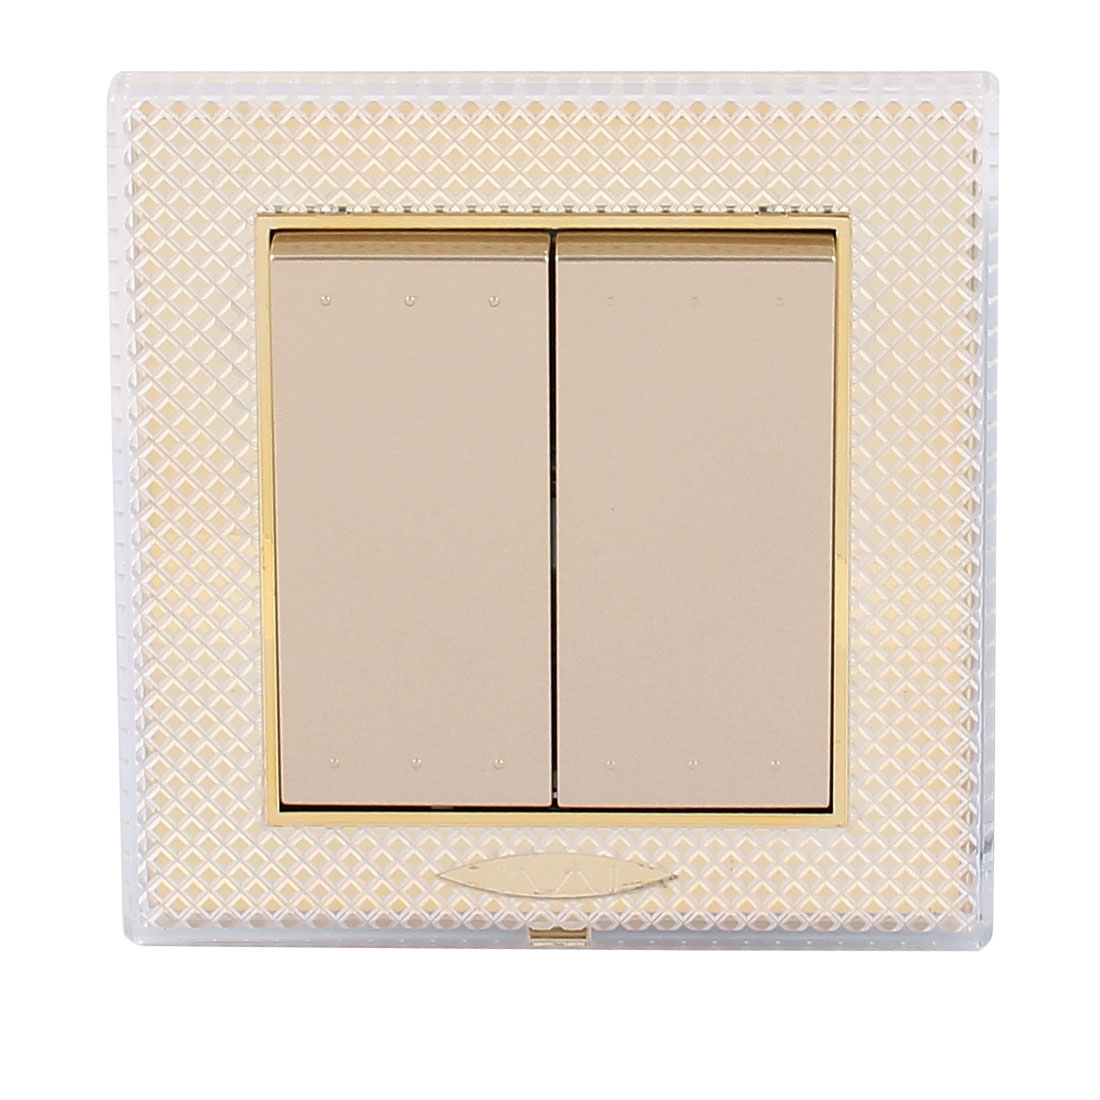 AC 250V 10A 2 Gang 1 way On/Off Press Button Flame Retardant PC Wall Switch Gold